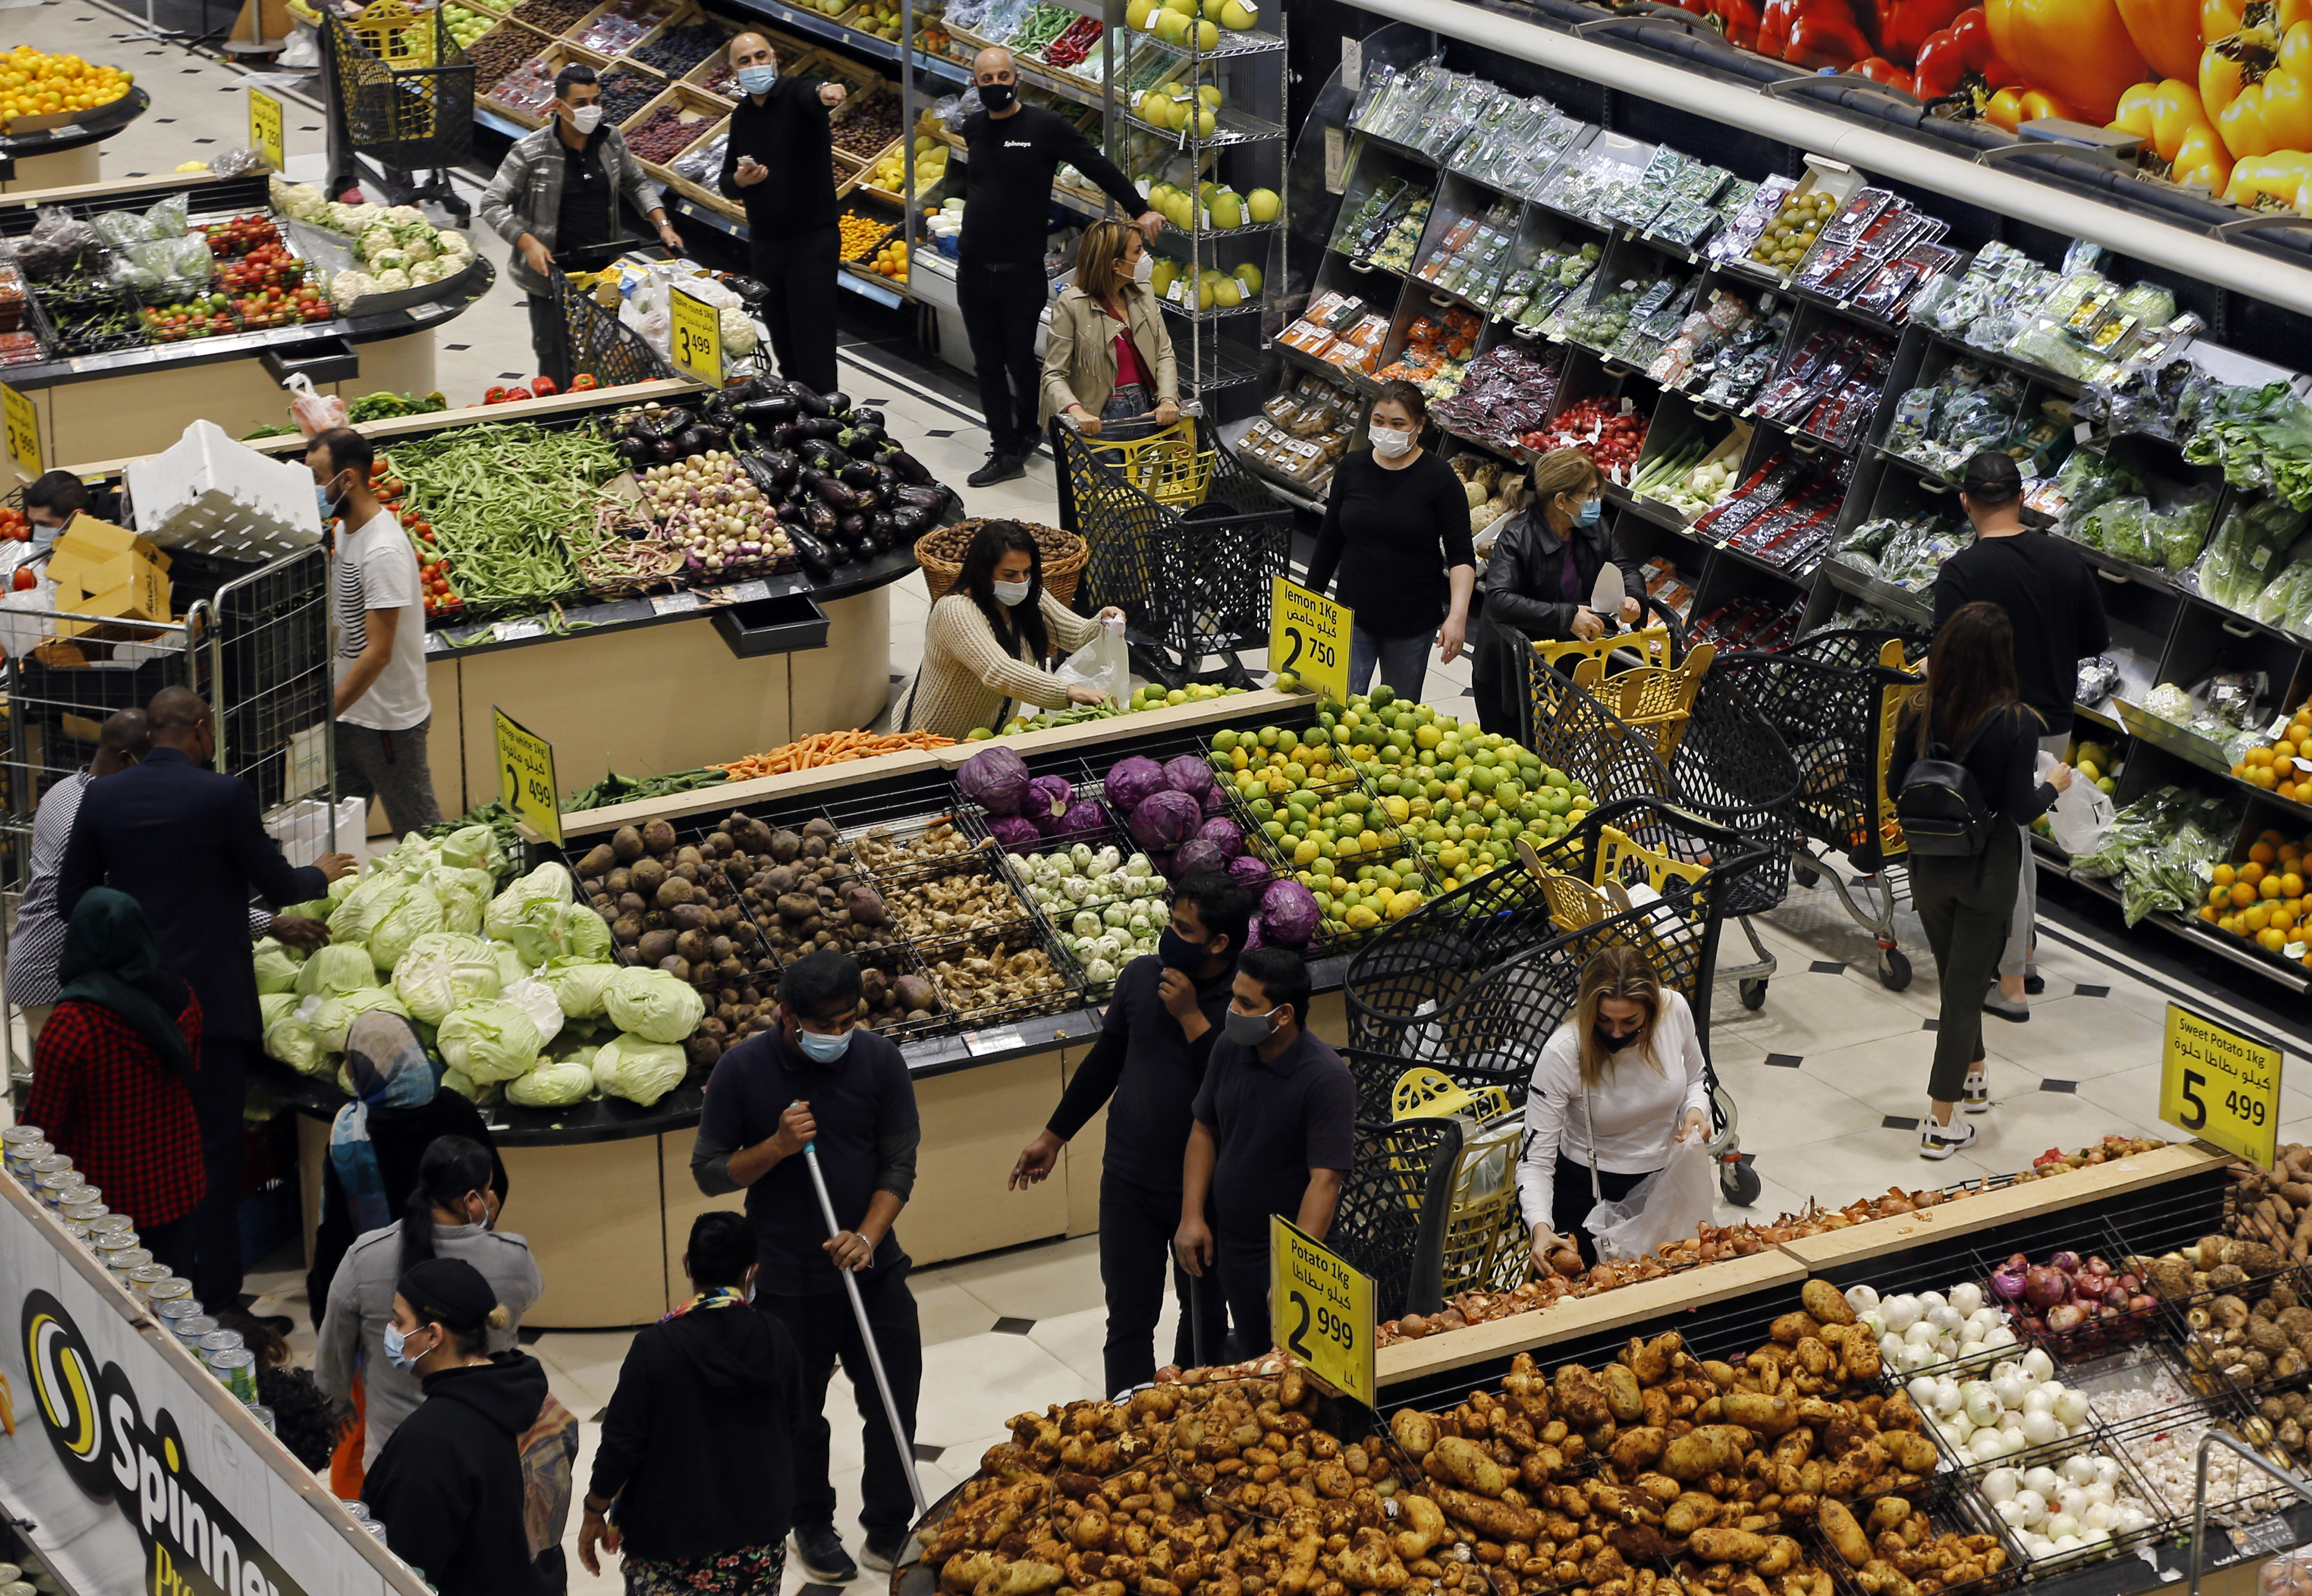 People shop at a supermarket as they stock up on provisions ahead of tighter lockdown restrictions, in Beirut, Lebanon on January 11.